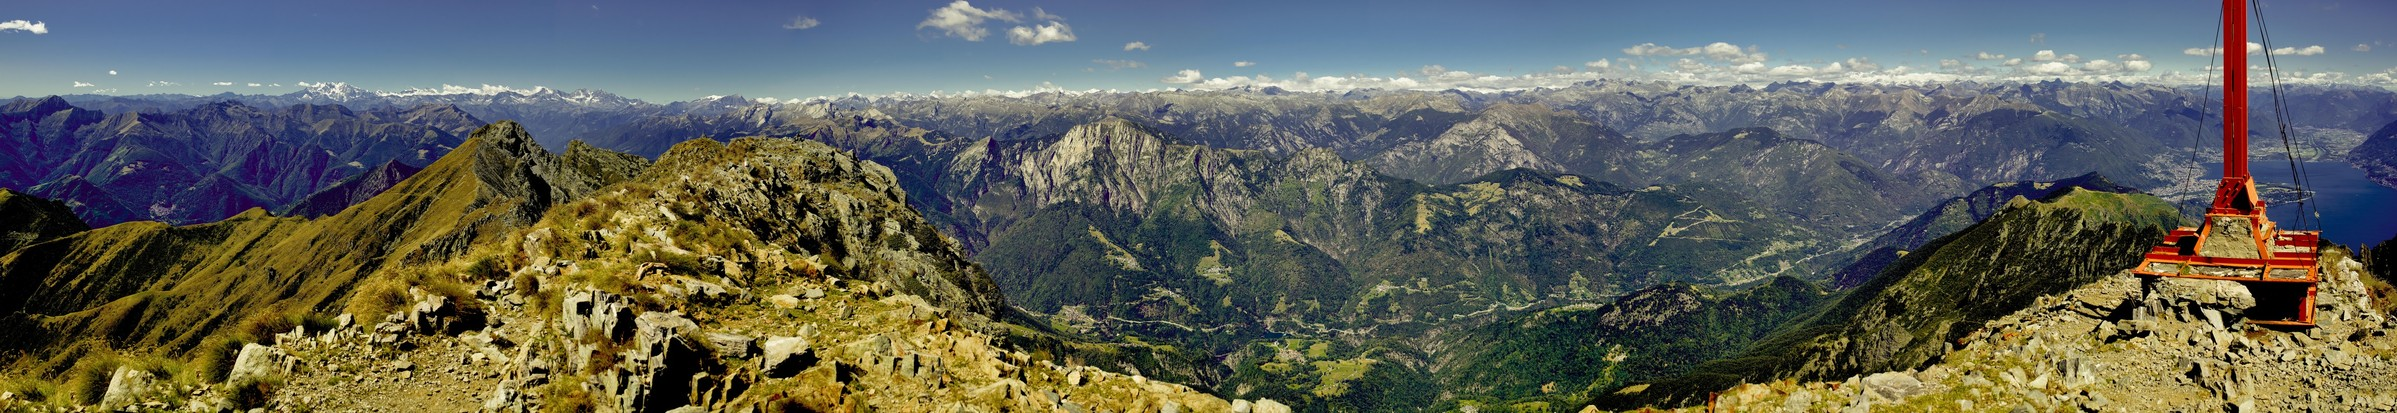 Monte Gridone Panorama by engel001 in Regular Member Gallery